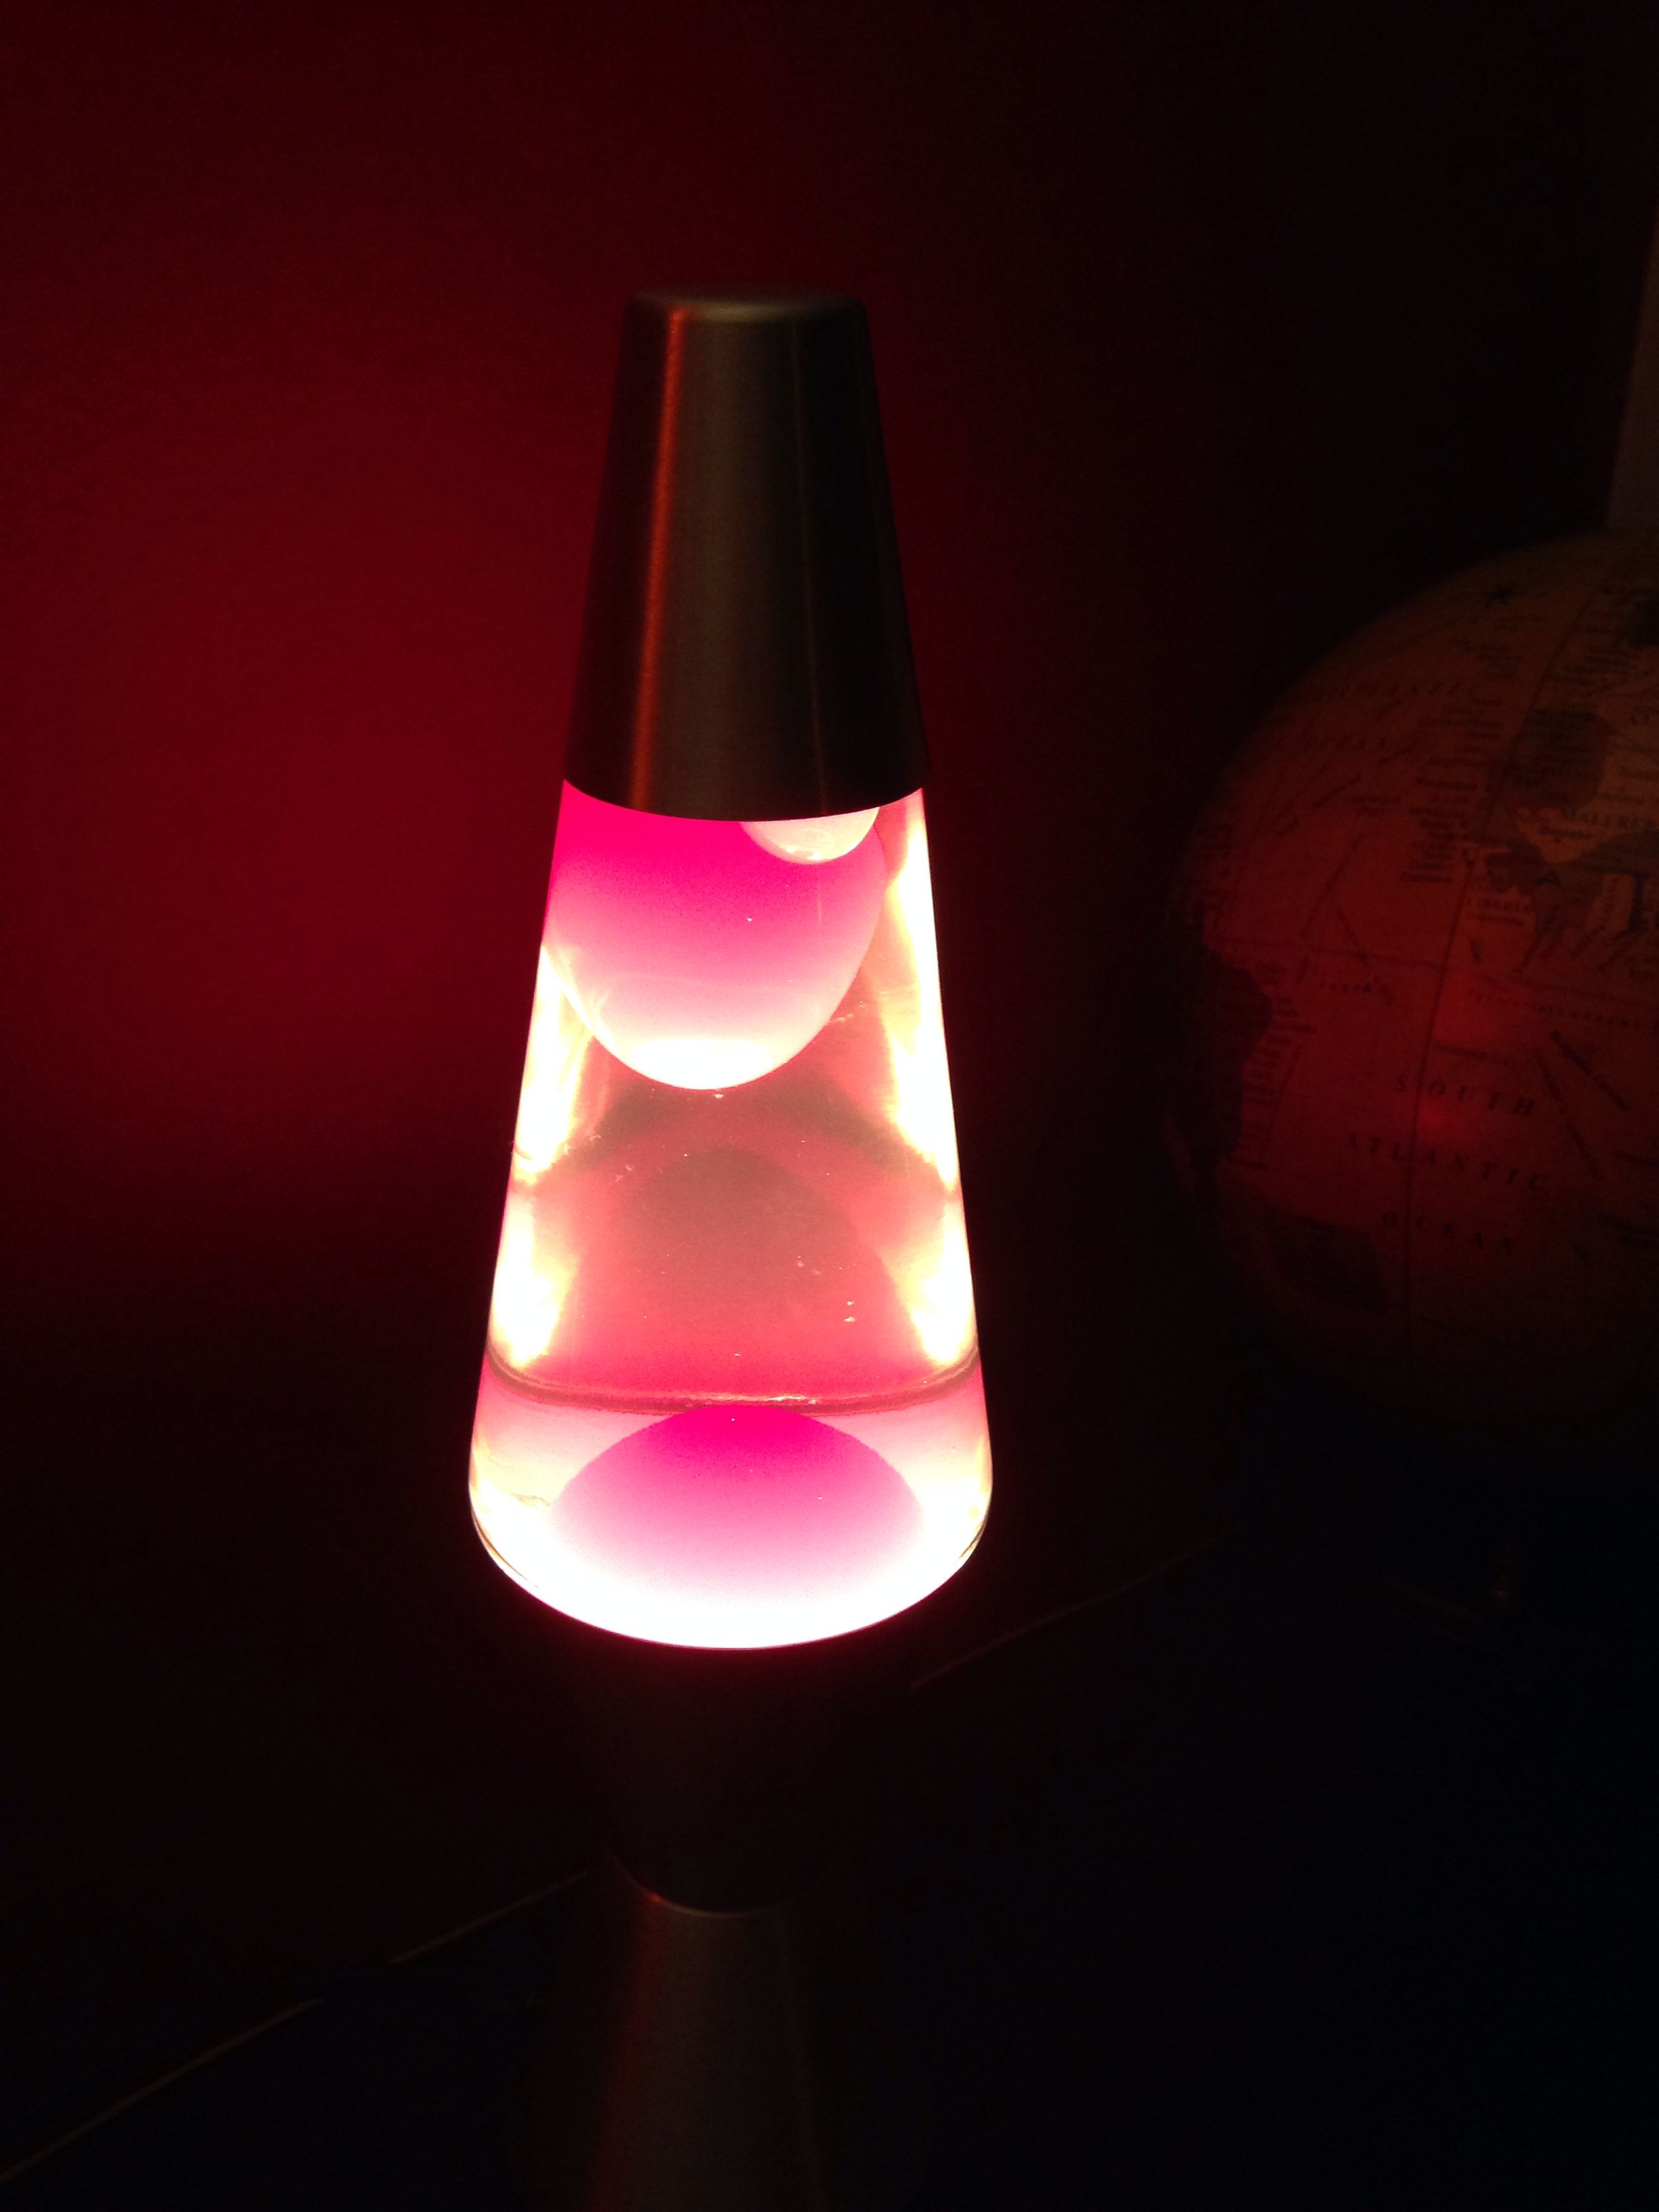 11 Inch Lava Lamp Clear Liquid Red Wax Lava Lamp Lamp Novelty Lamp